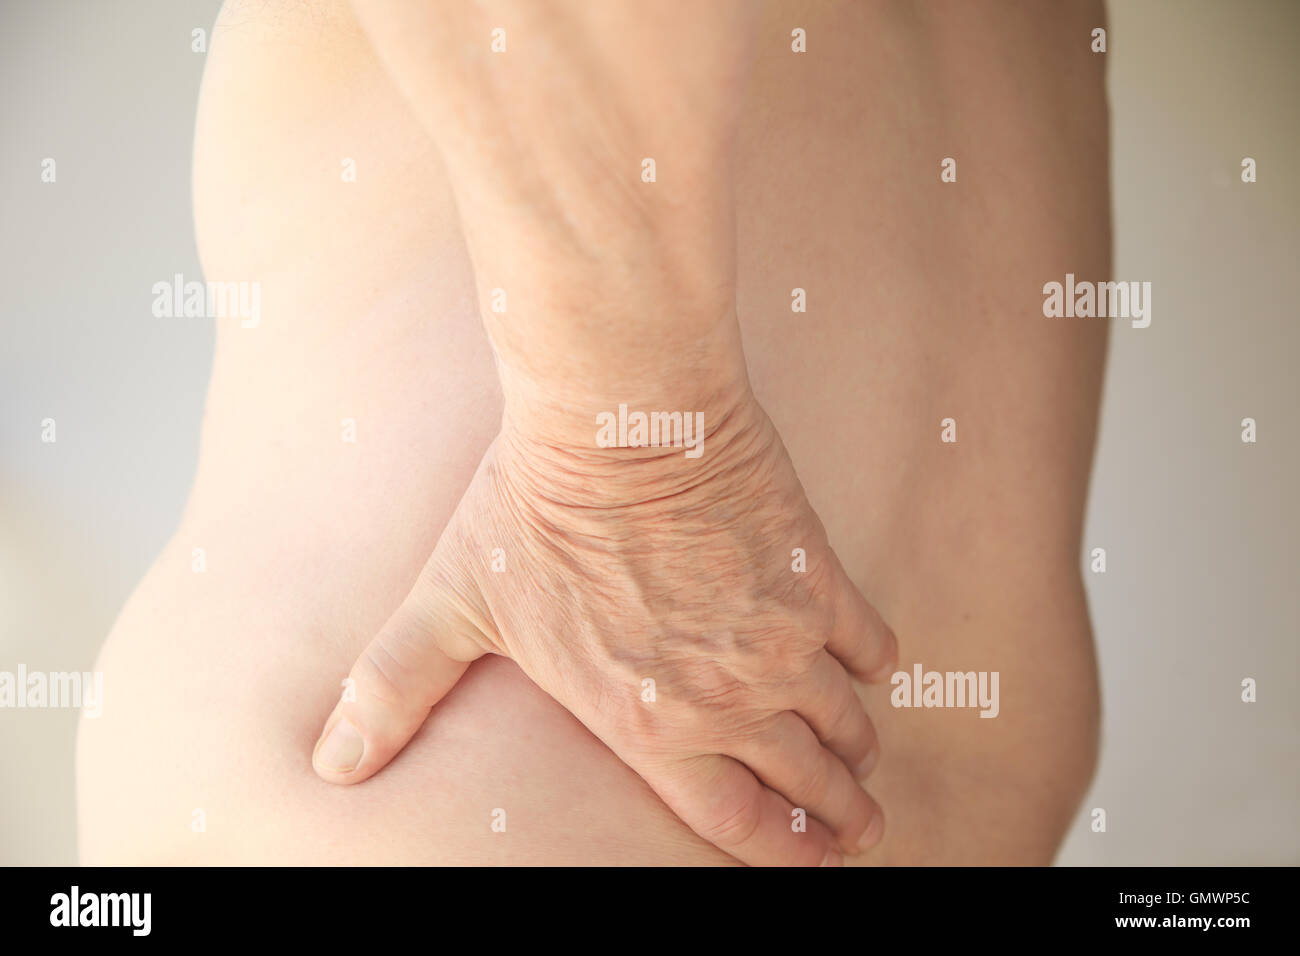 A shirtless man has his hand on his sore back. - Stock Image